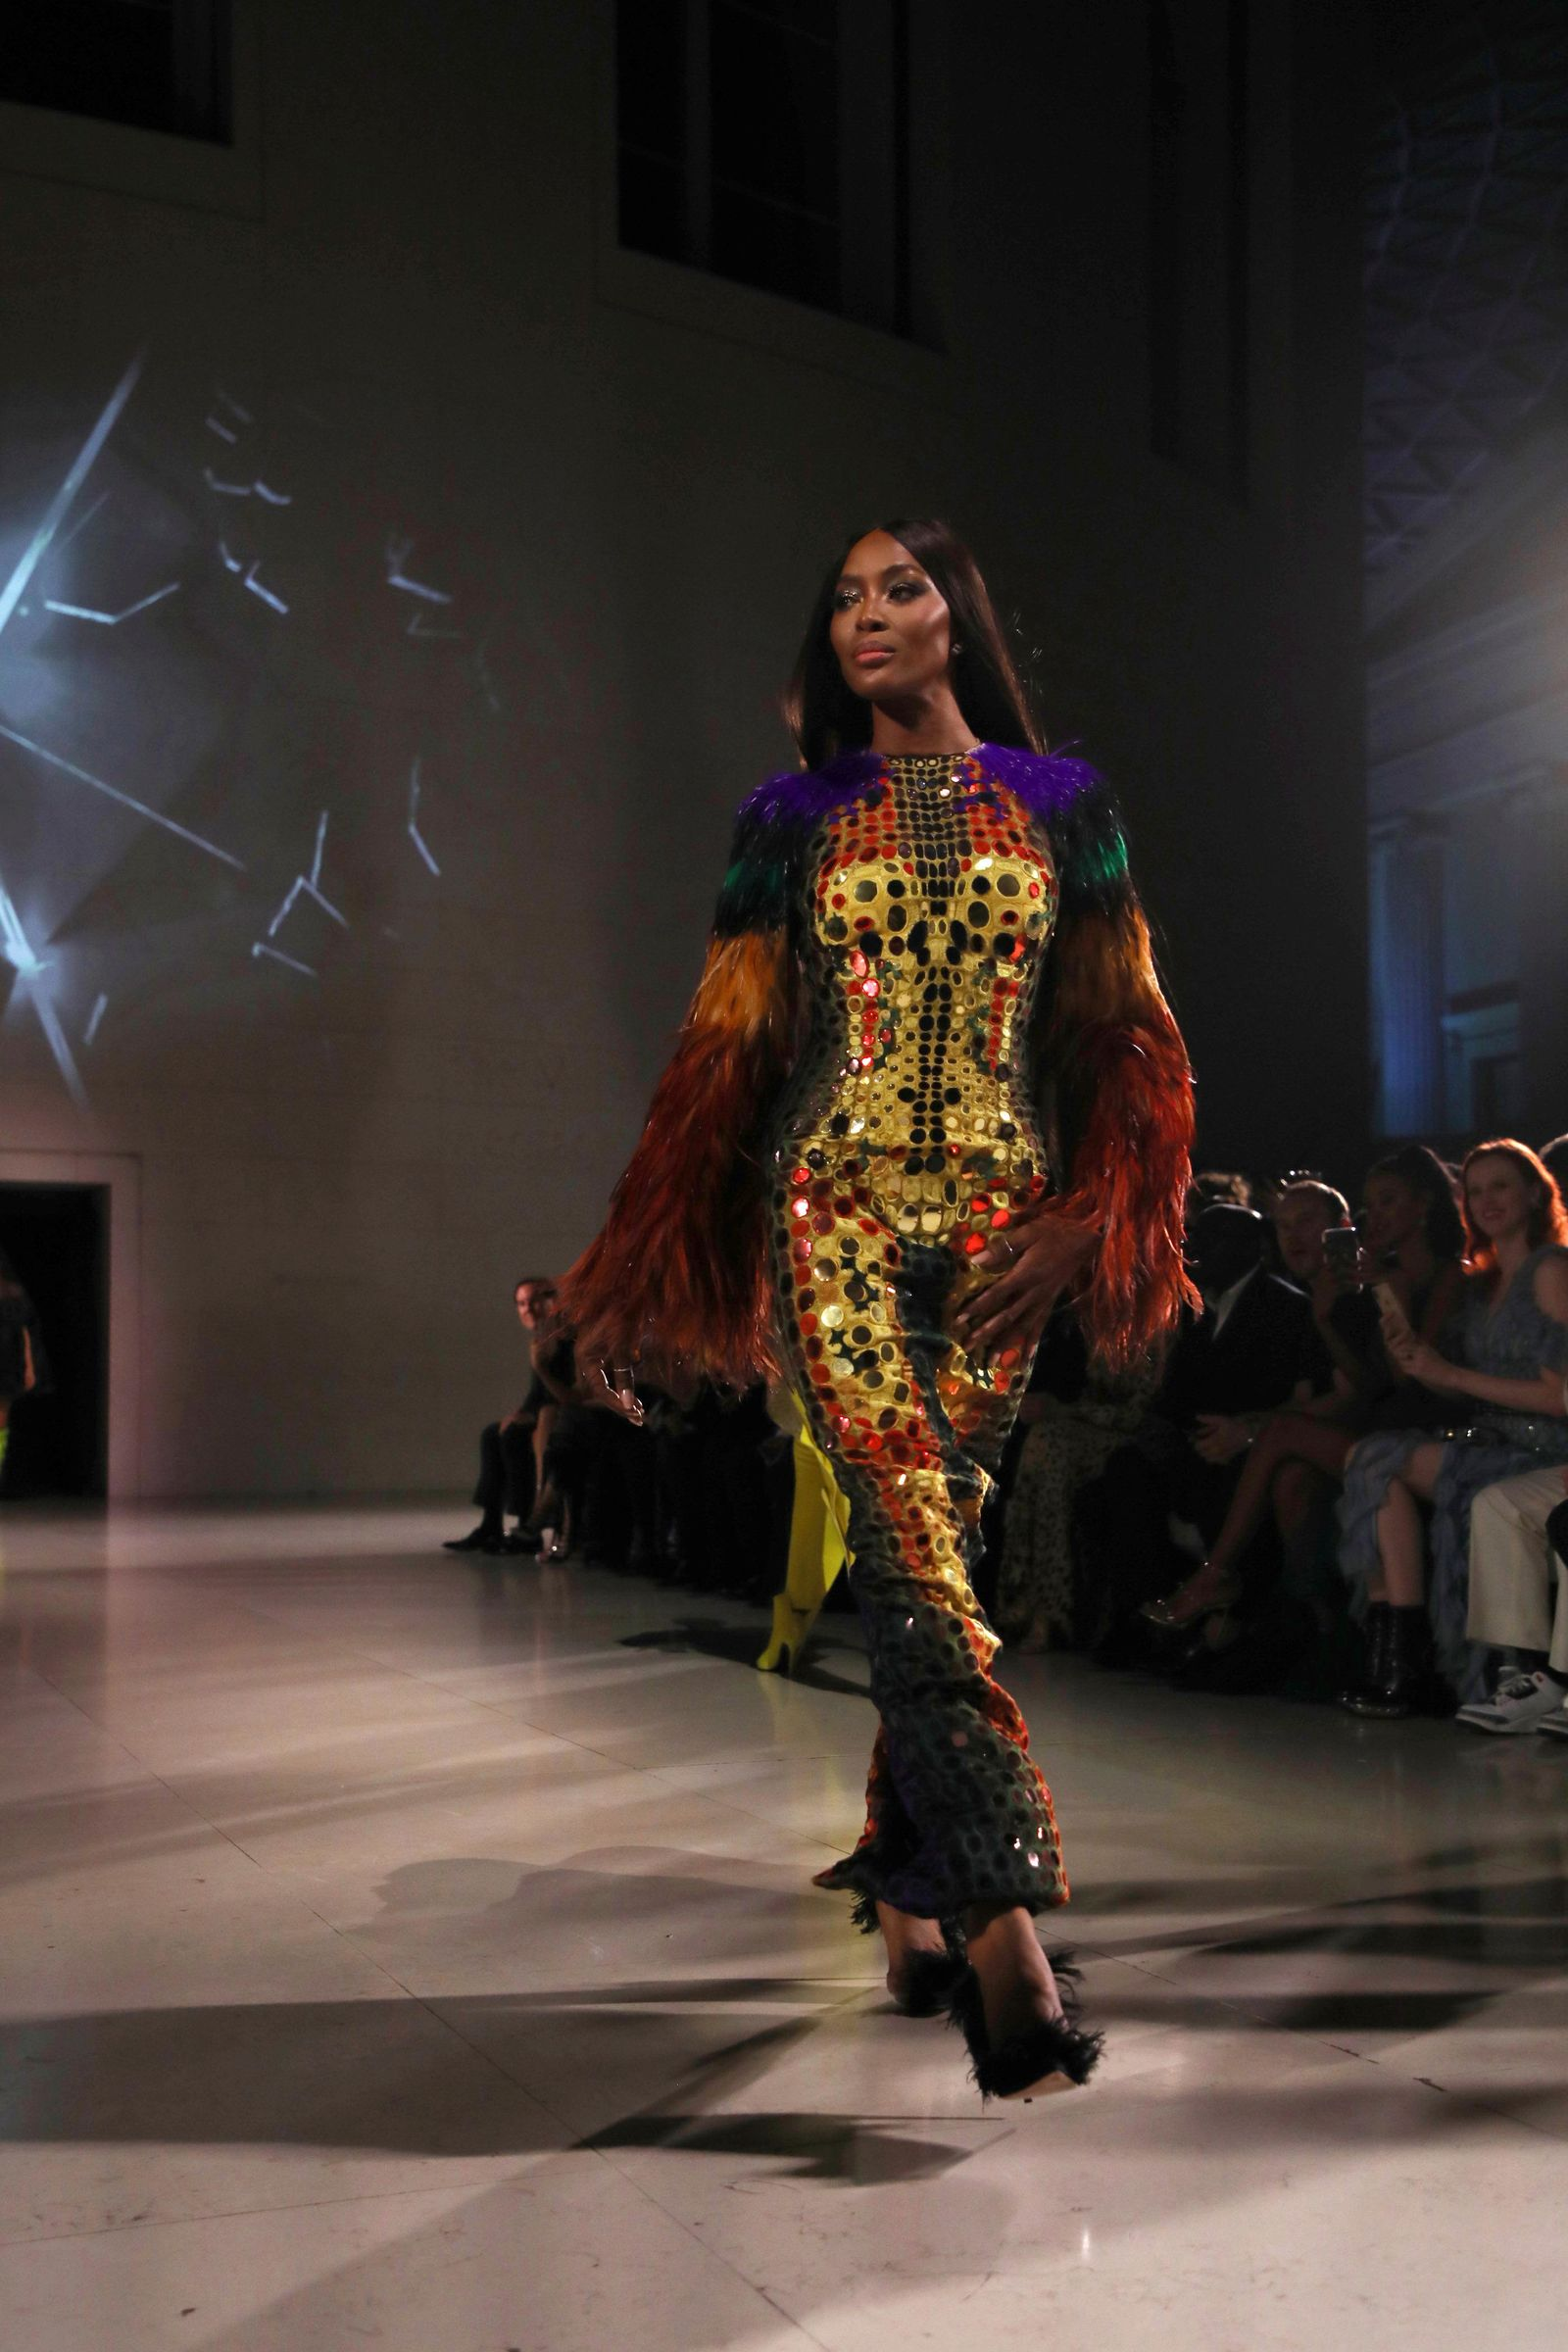 Model Naomi Campbell walks the runway at the Fashion For Relief charity event in central London, Saturday, Sept. 14, 2019. (Photo by Vianney Le Caer/Invision/AP)